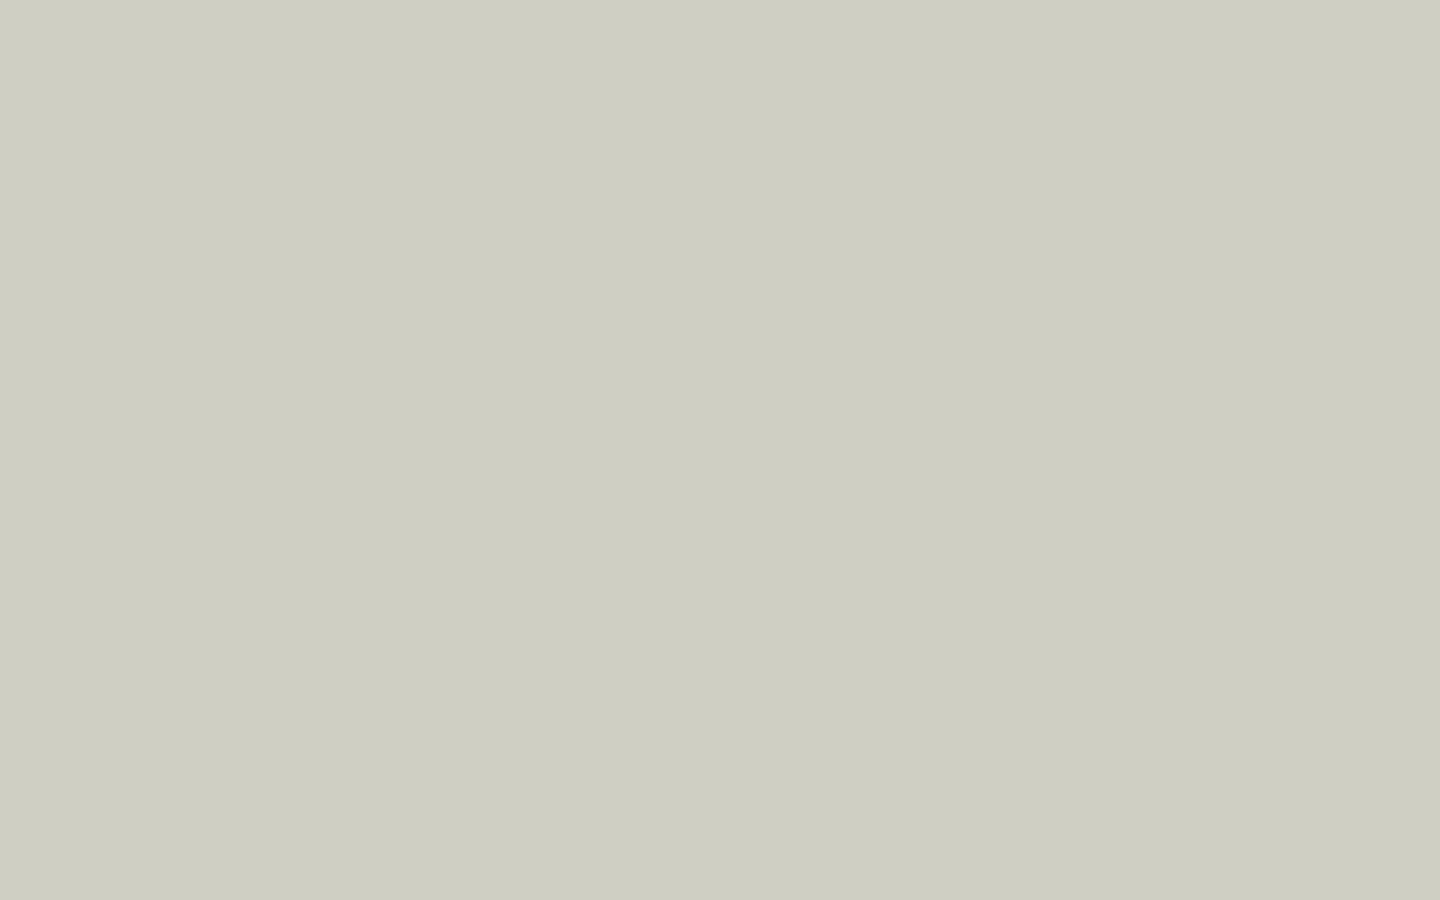 1440x900 Pastel Gray Solid Color Background